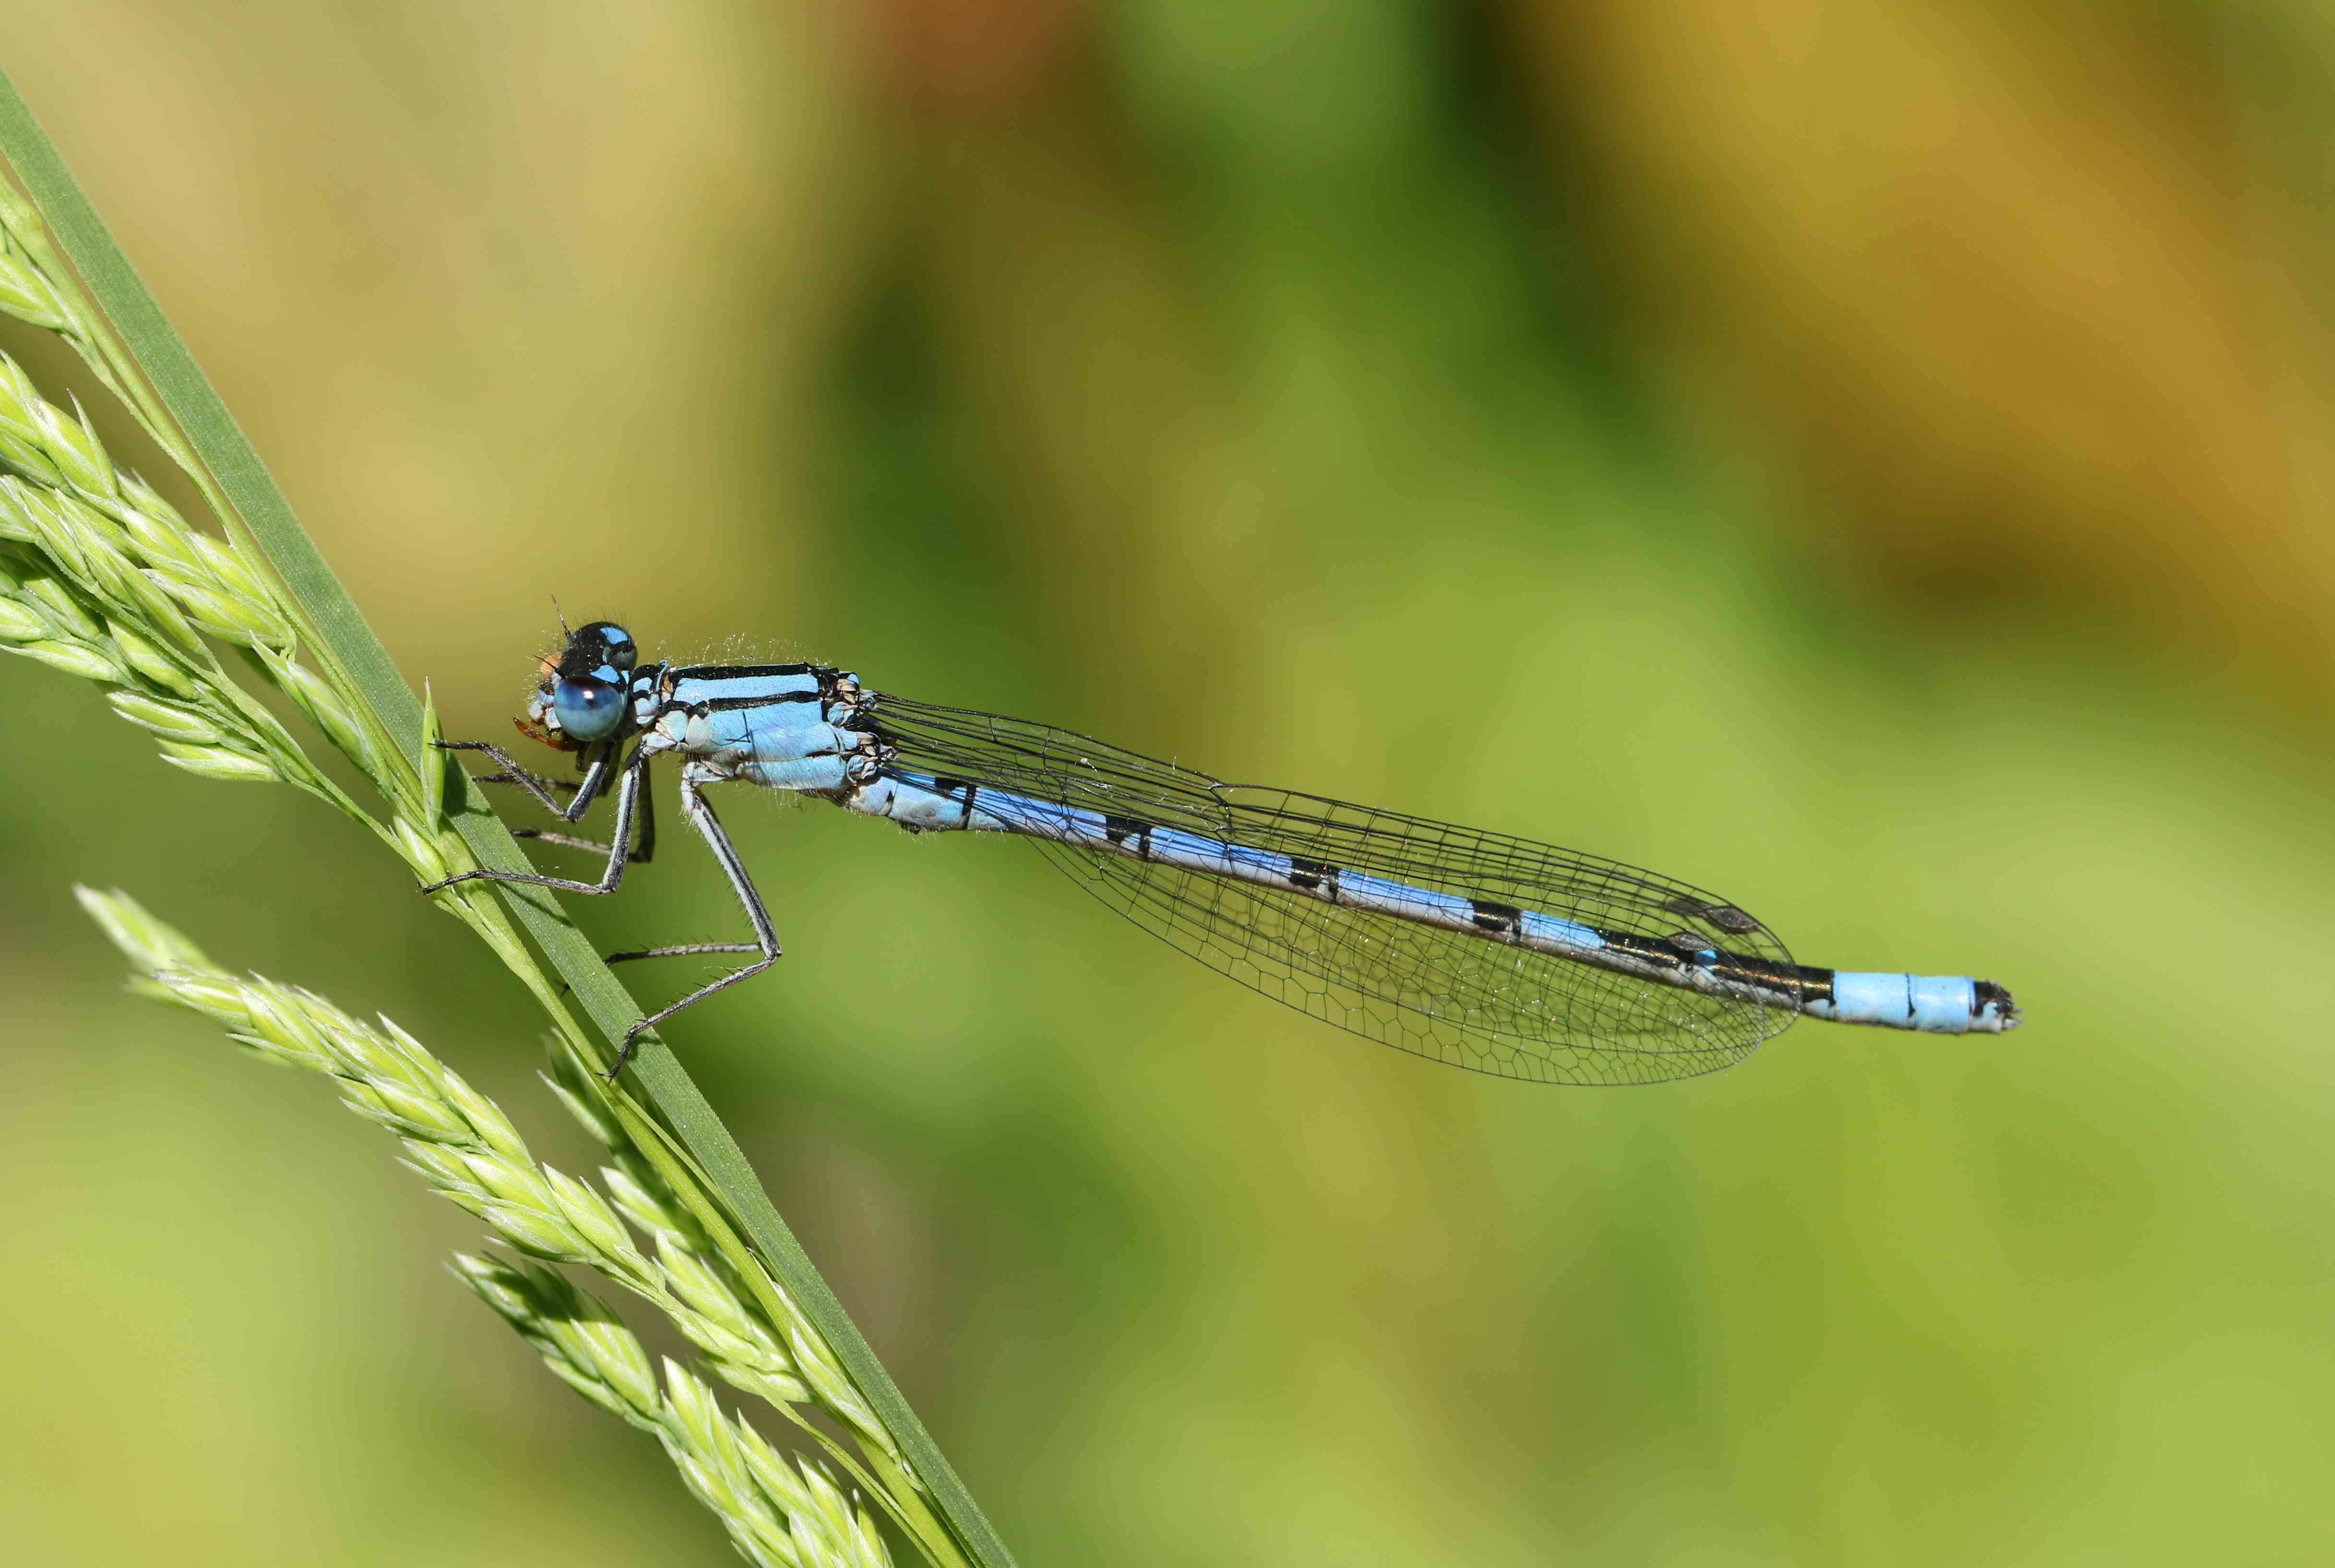 A Common Blue Damselfly, Enallagma cyathigerum, perching on grass seeds at the edge of a lake in springtime eating an insect.